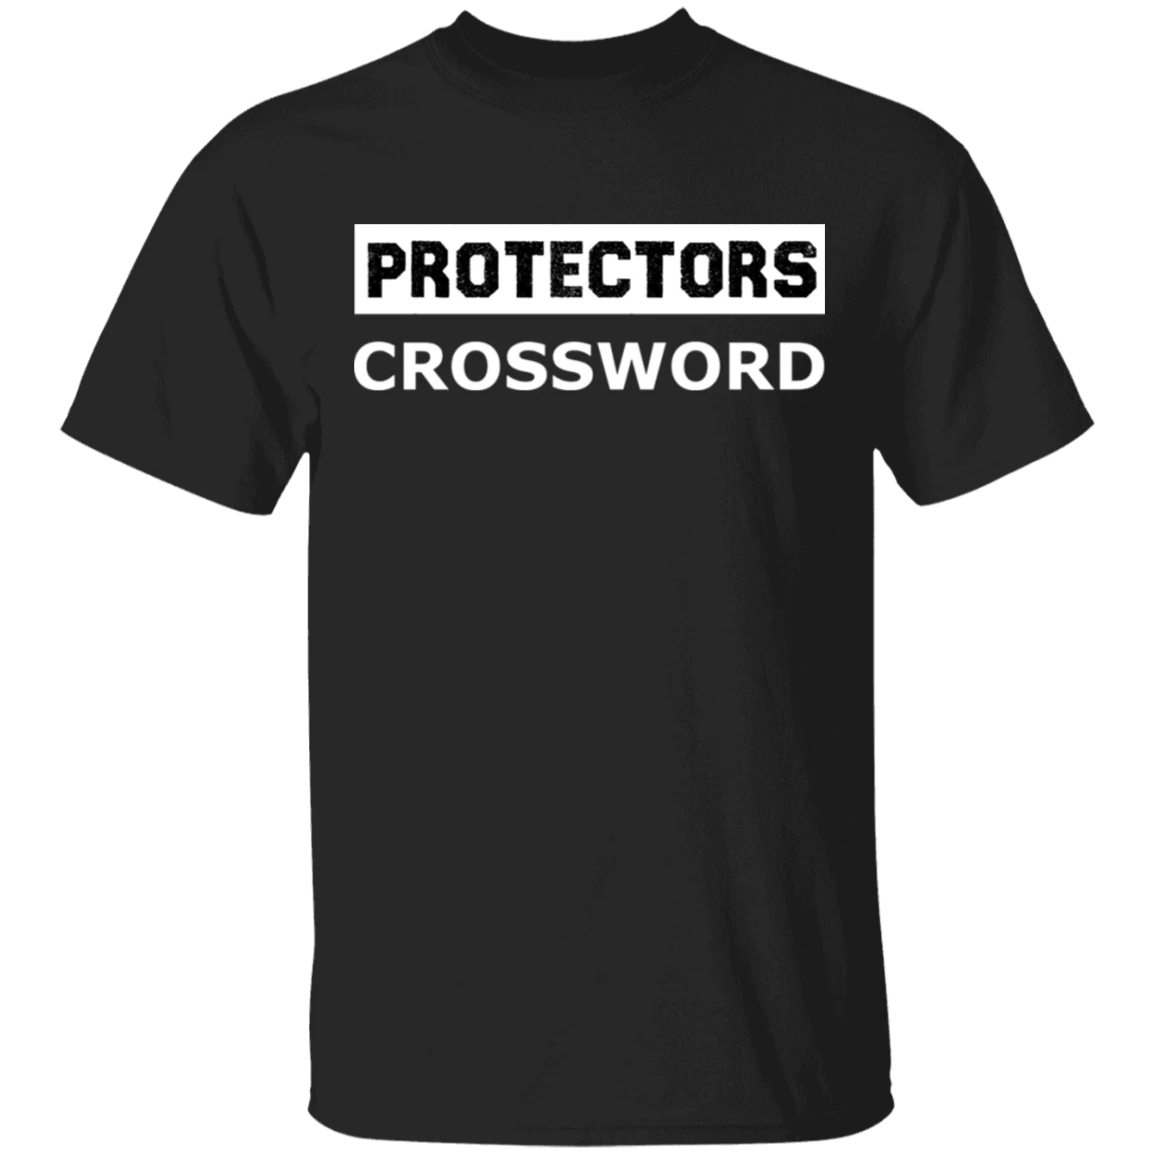 Protectors Crossword T-Shirt NYT Crossword Puzzle Shirt Gifts For Best Friends